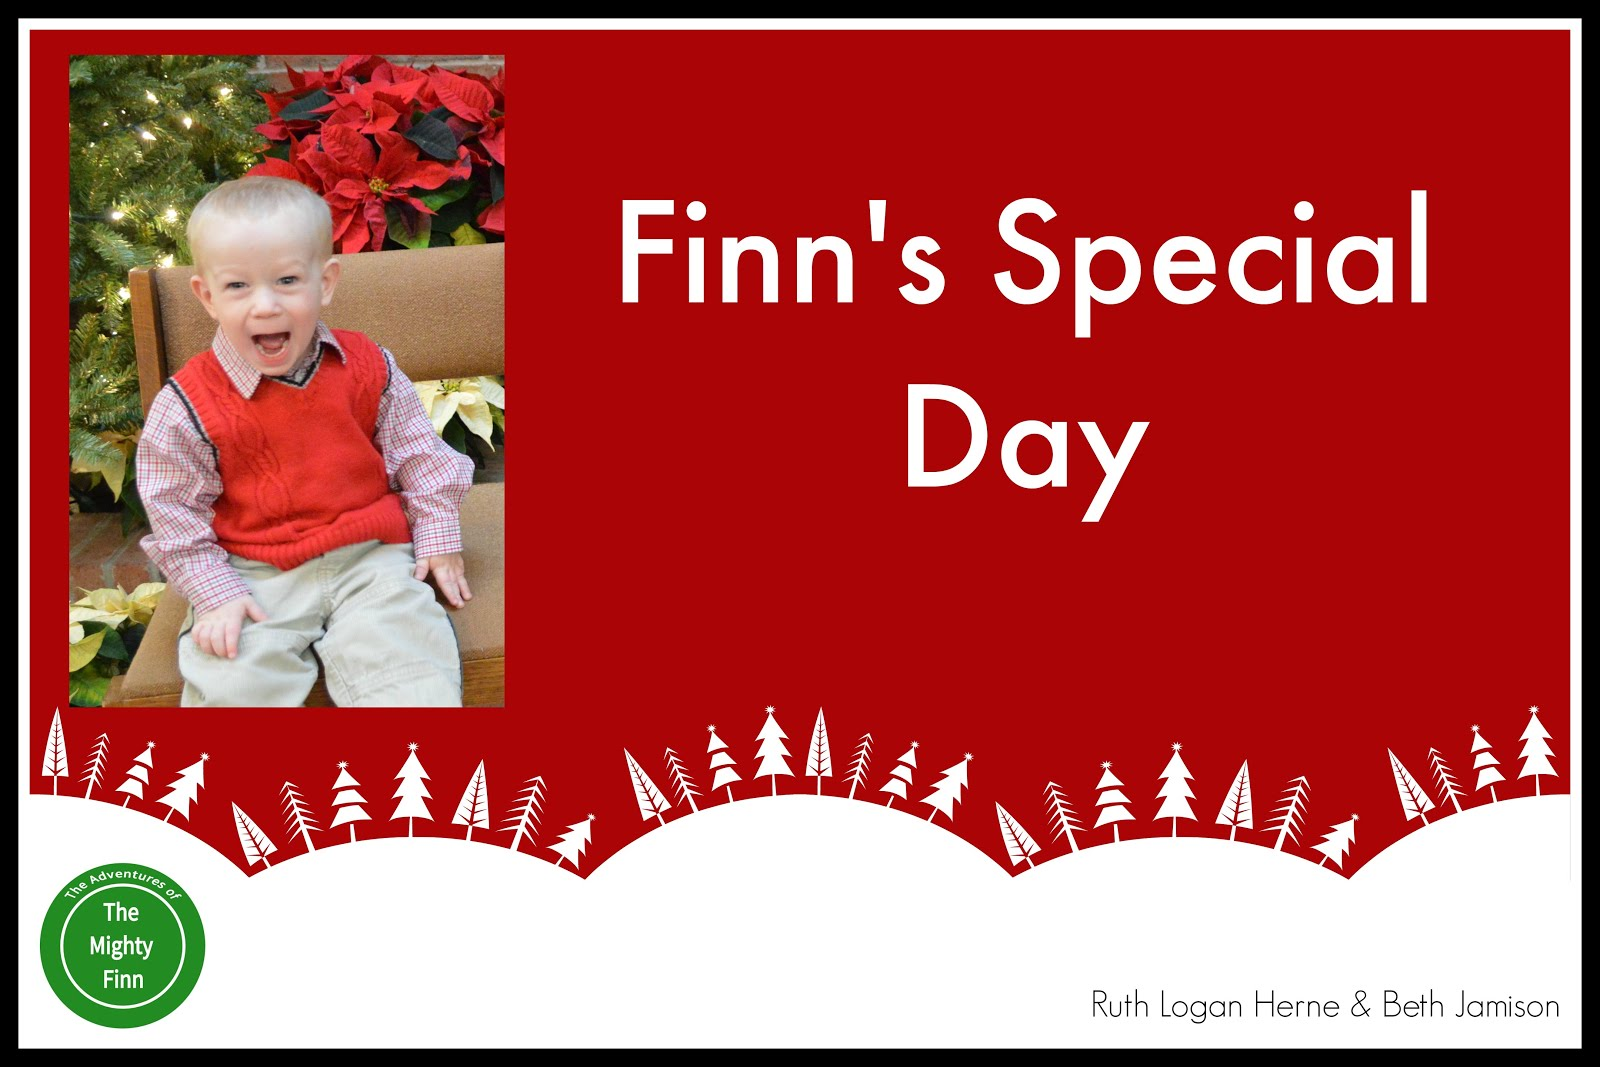 Finn's Special Day